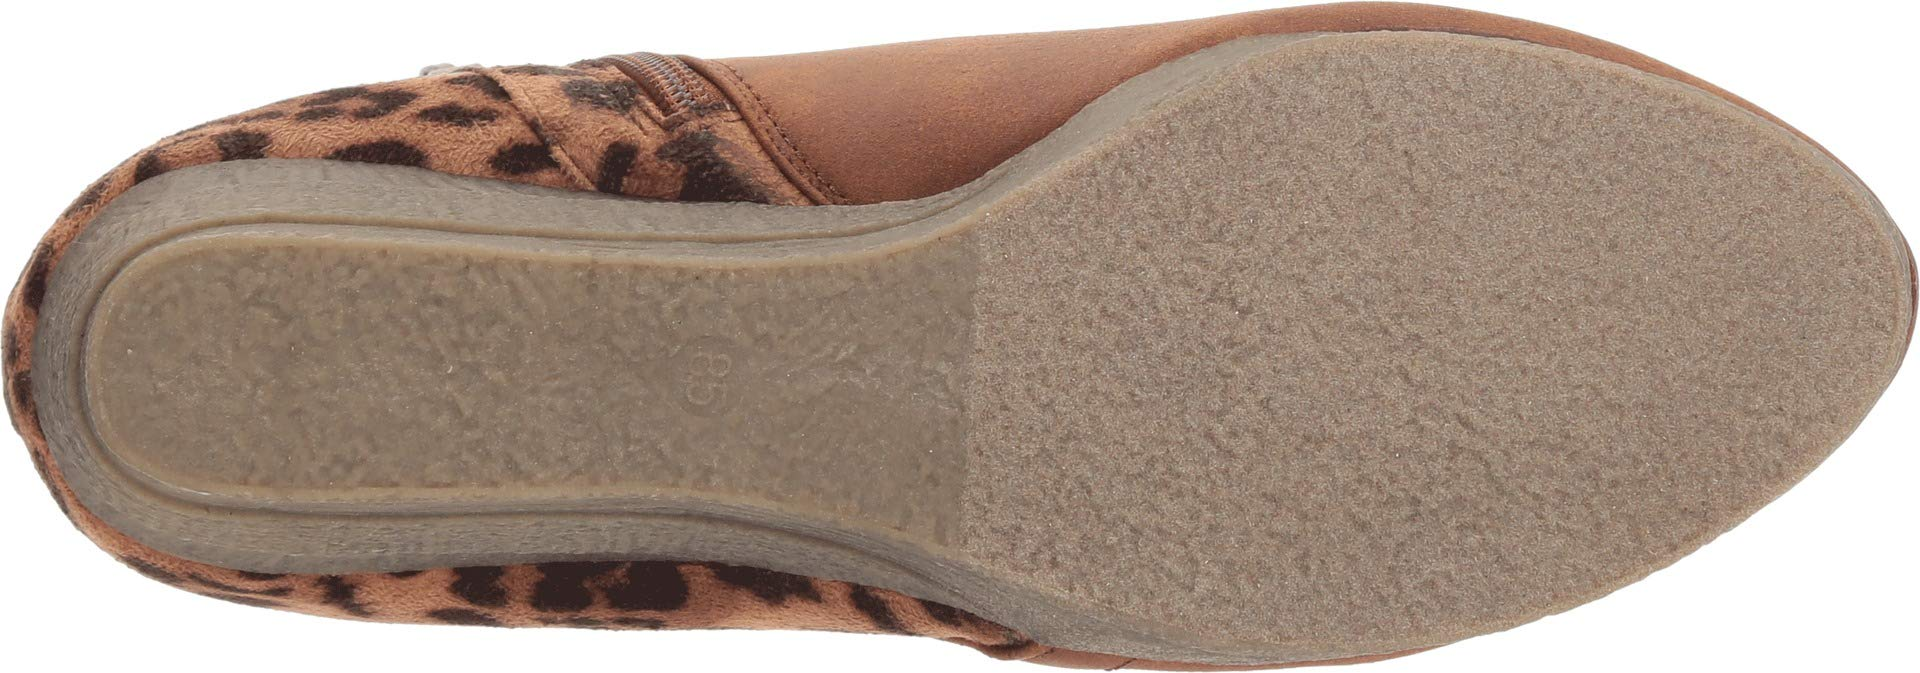 Sbicca Women's Alexandria Tan/Leopard 8.5 M US M by Sbicca (Image #3)